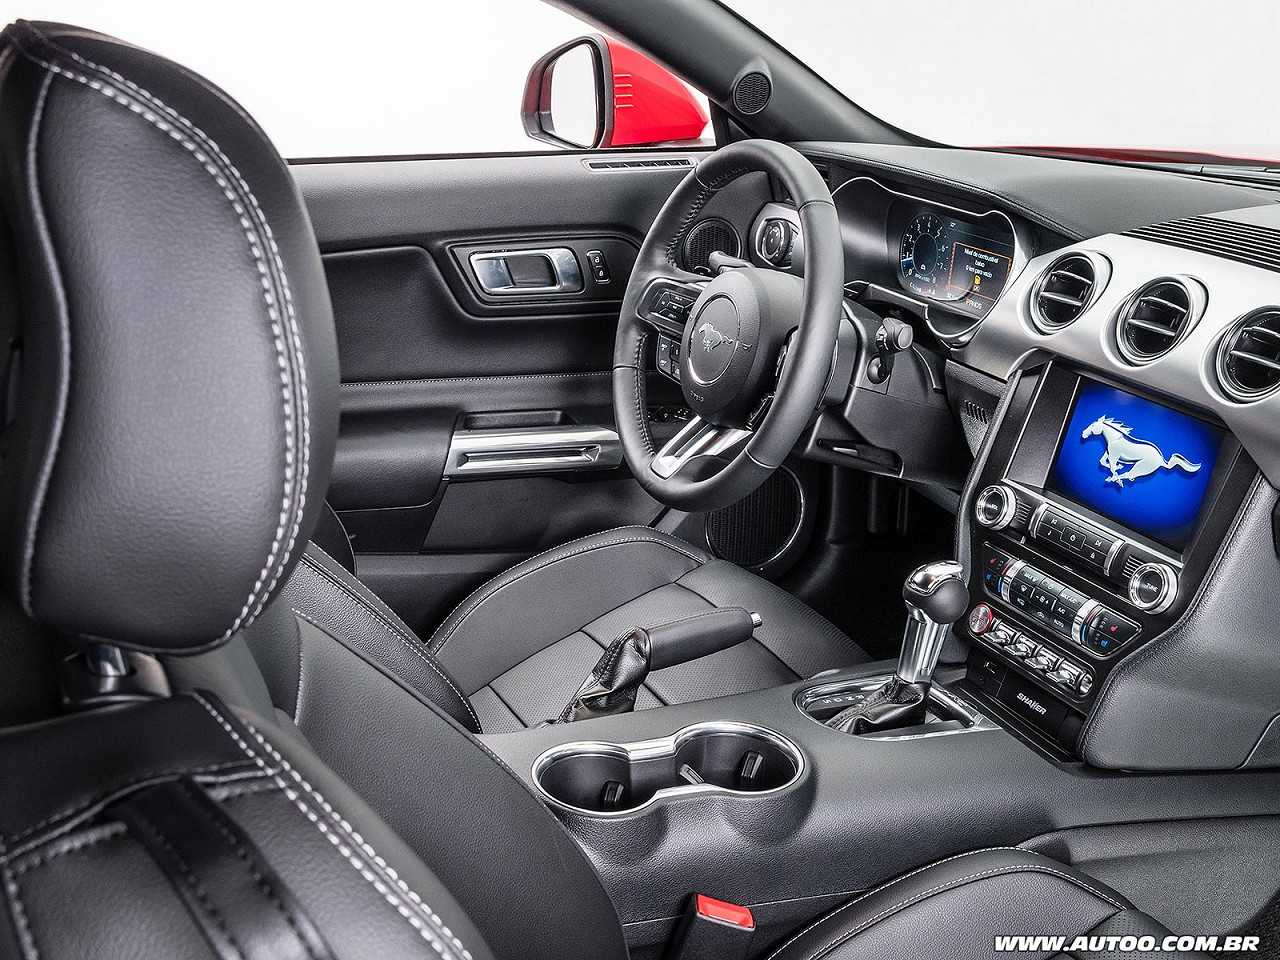 FordMustang 2019 - painel